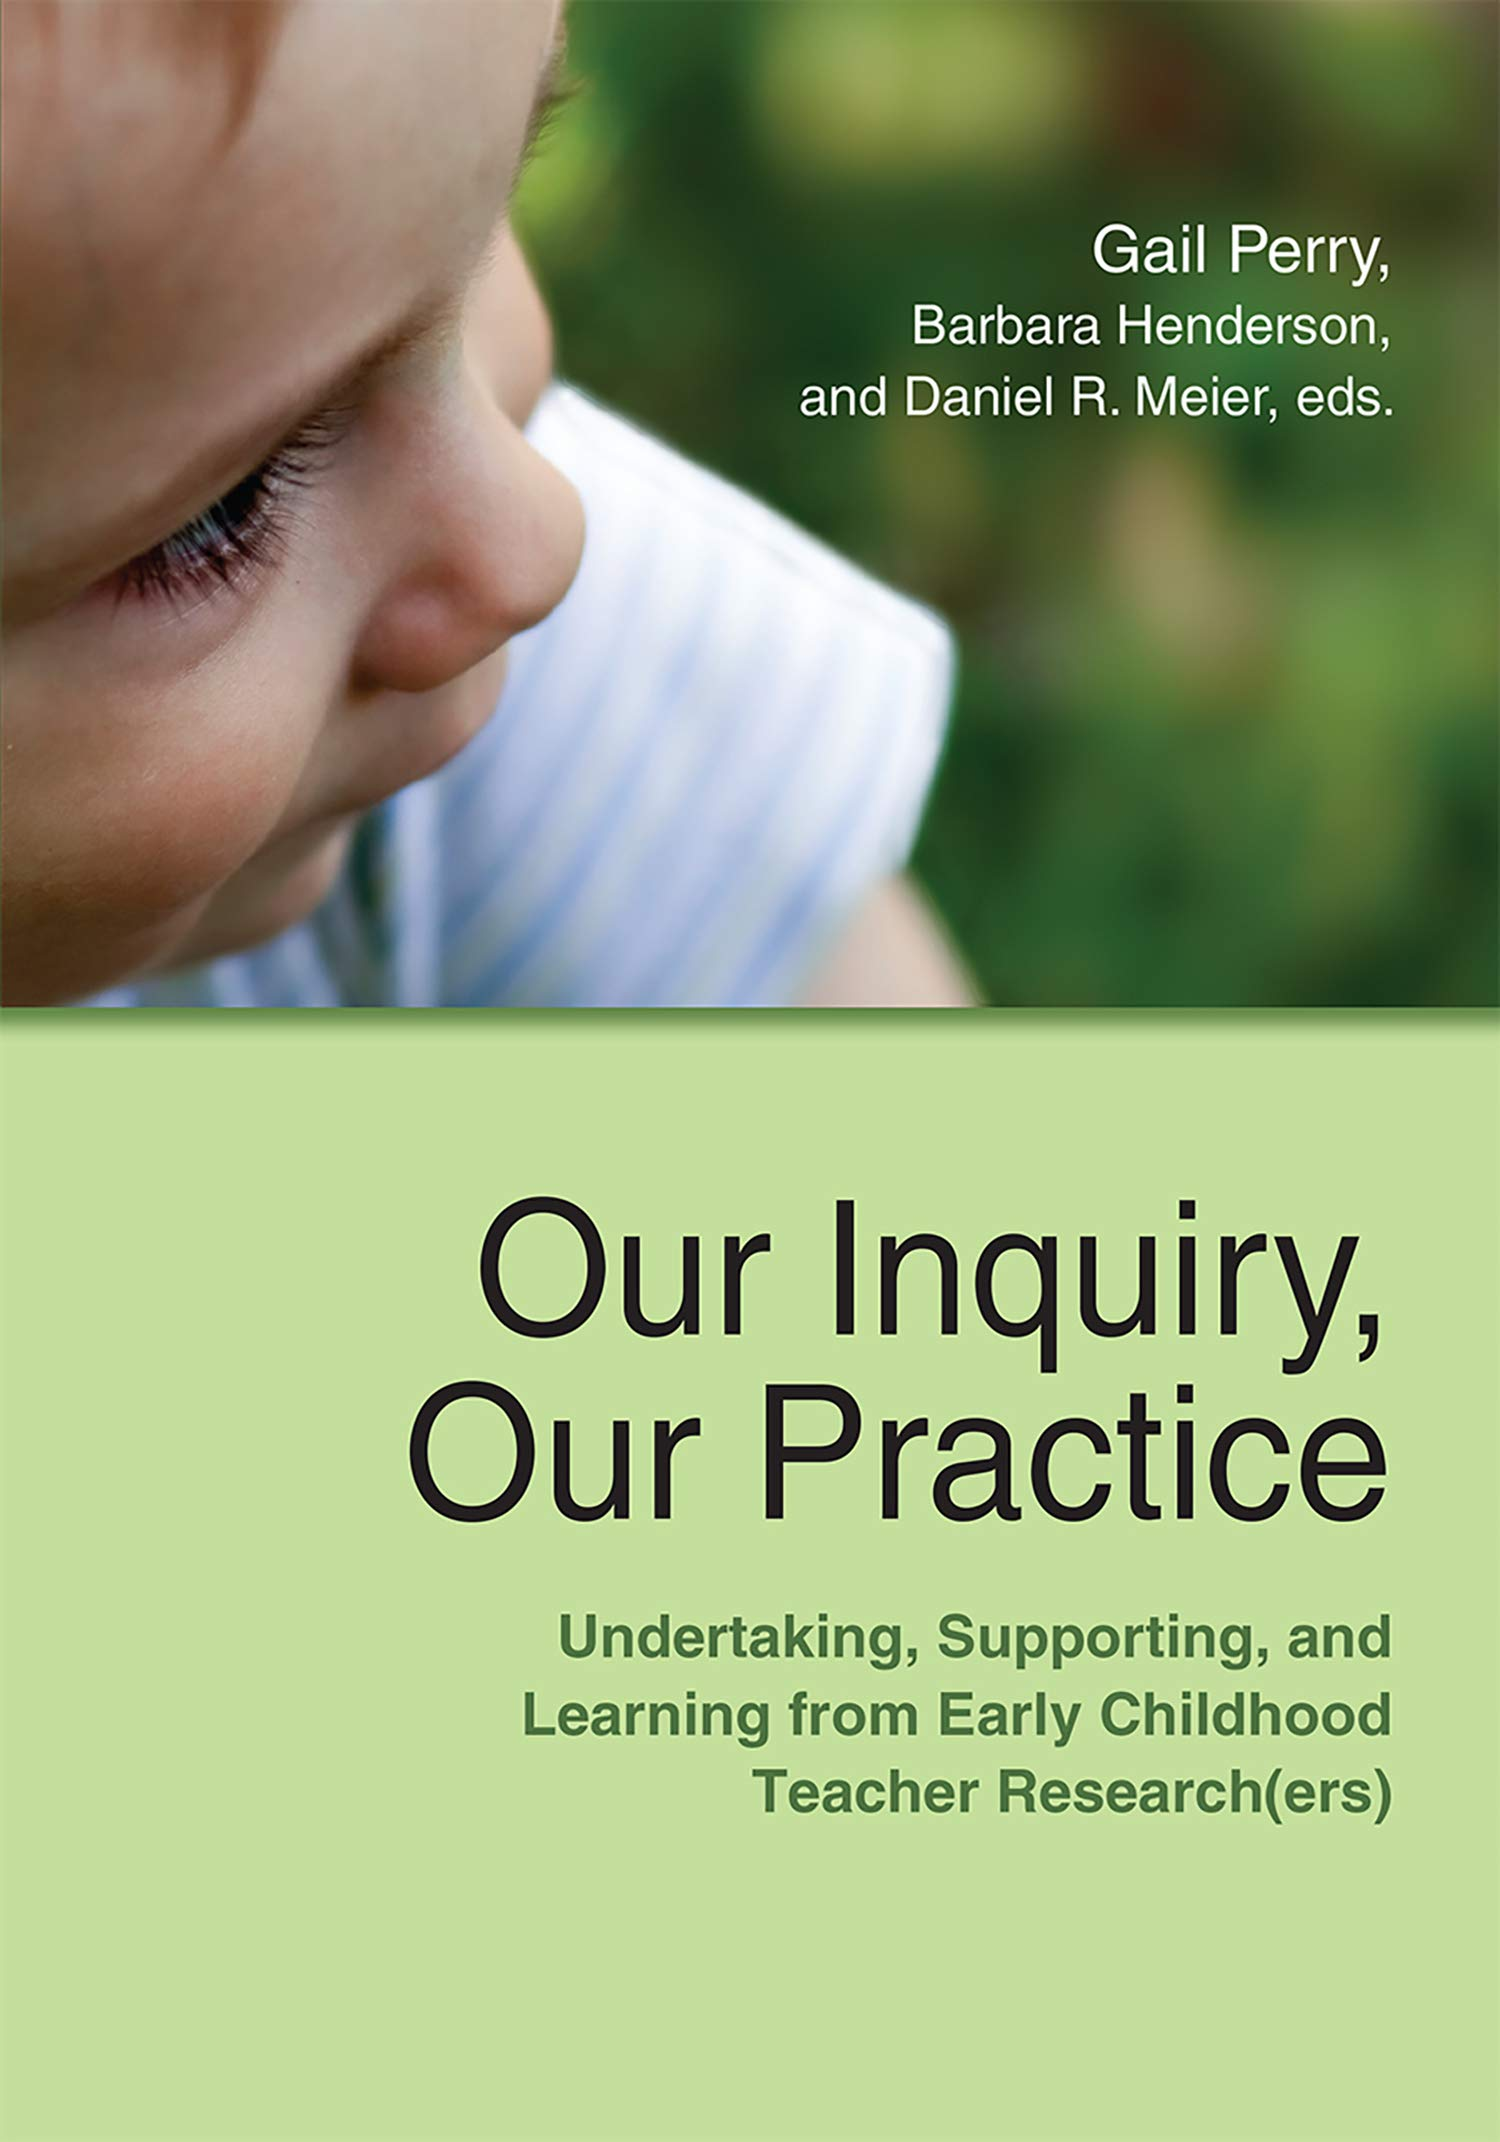 Our Inquiry, Our Practice: Undertaking, Supporting, and Learning from Early Childhood Teacher Research(ers) (Naeyc) PDF